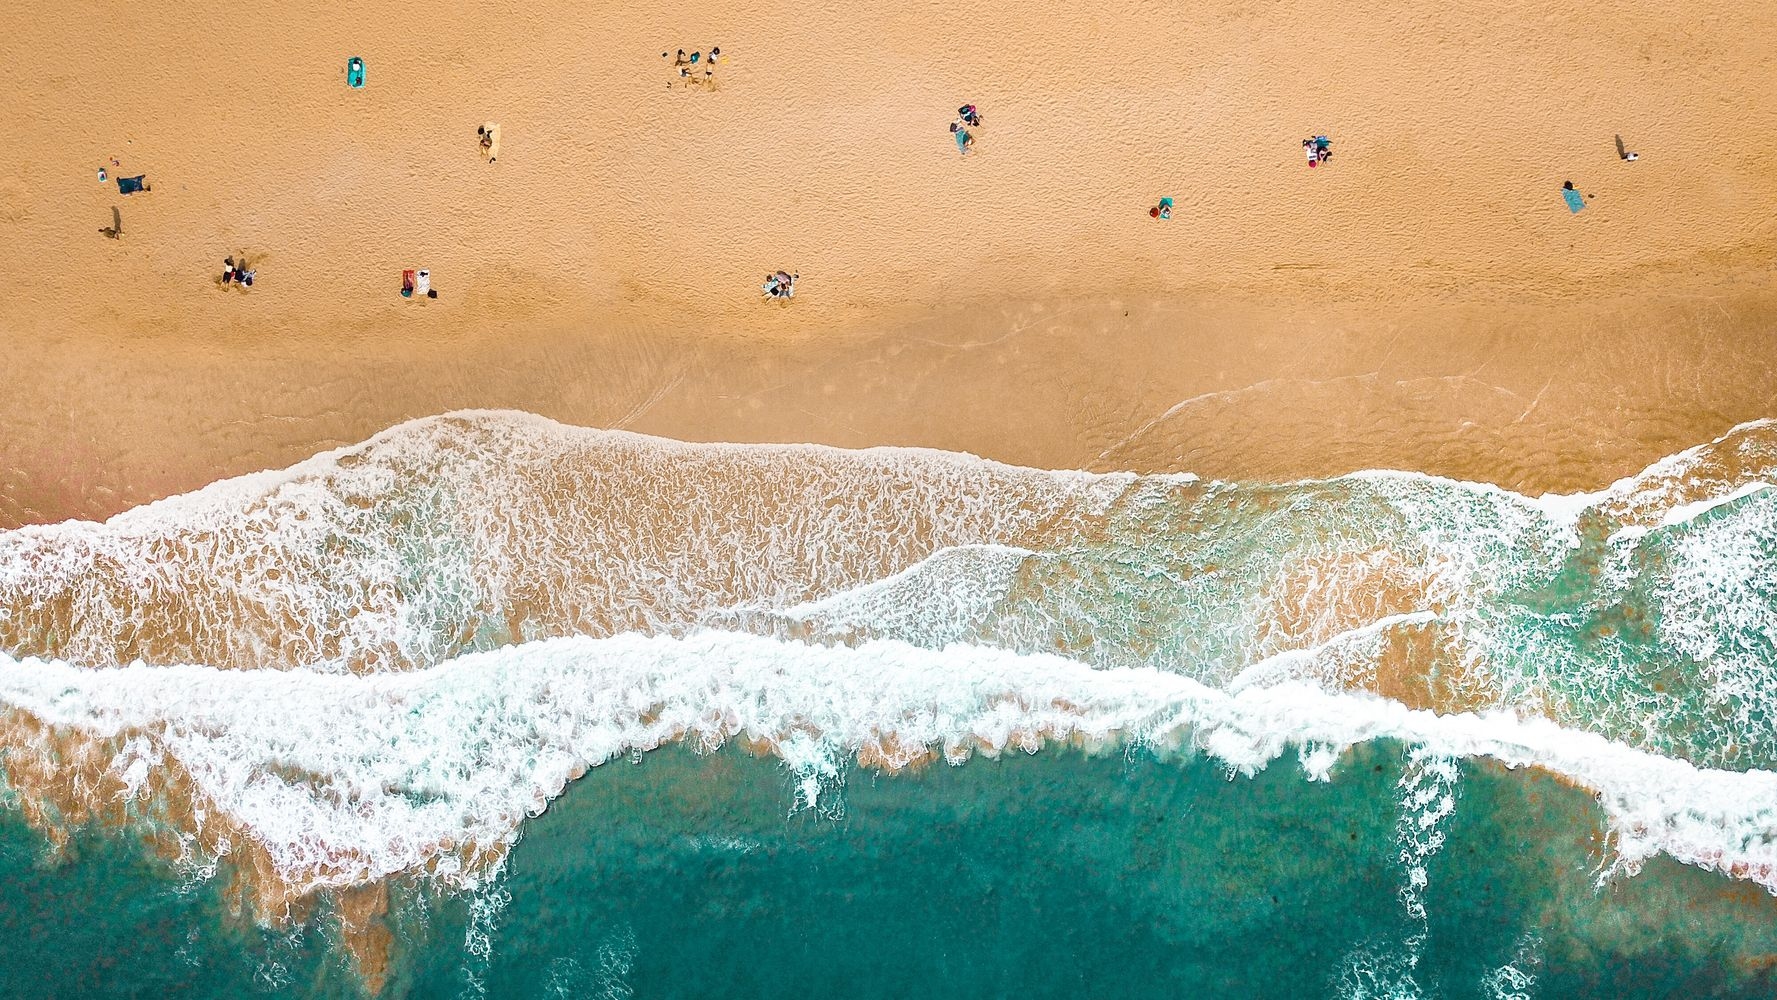 What You Should Know About Going To The Beach This Summer